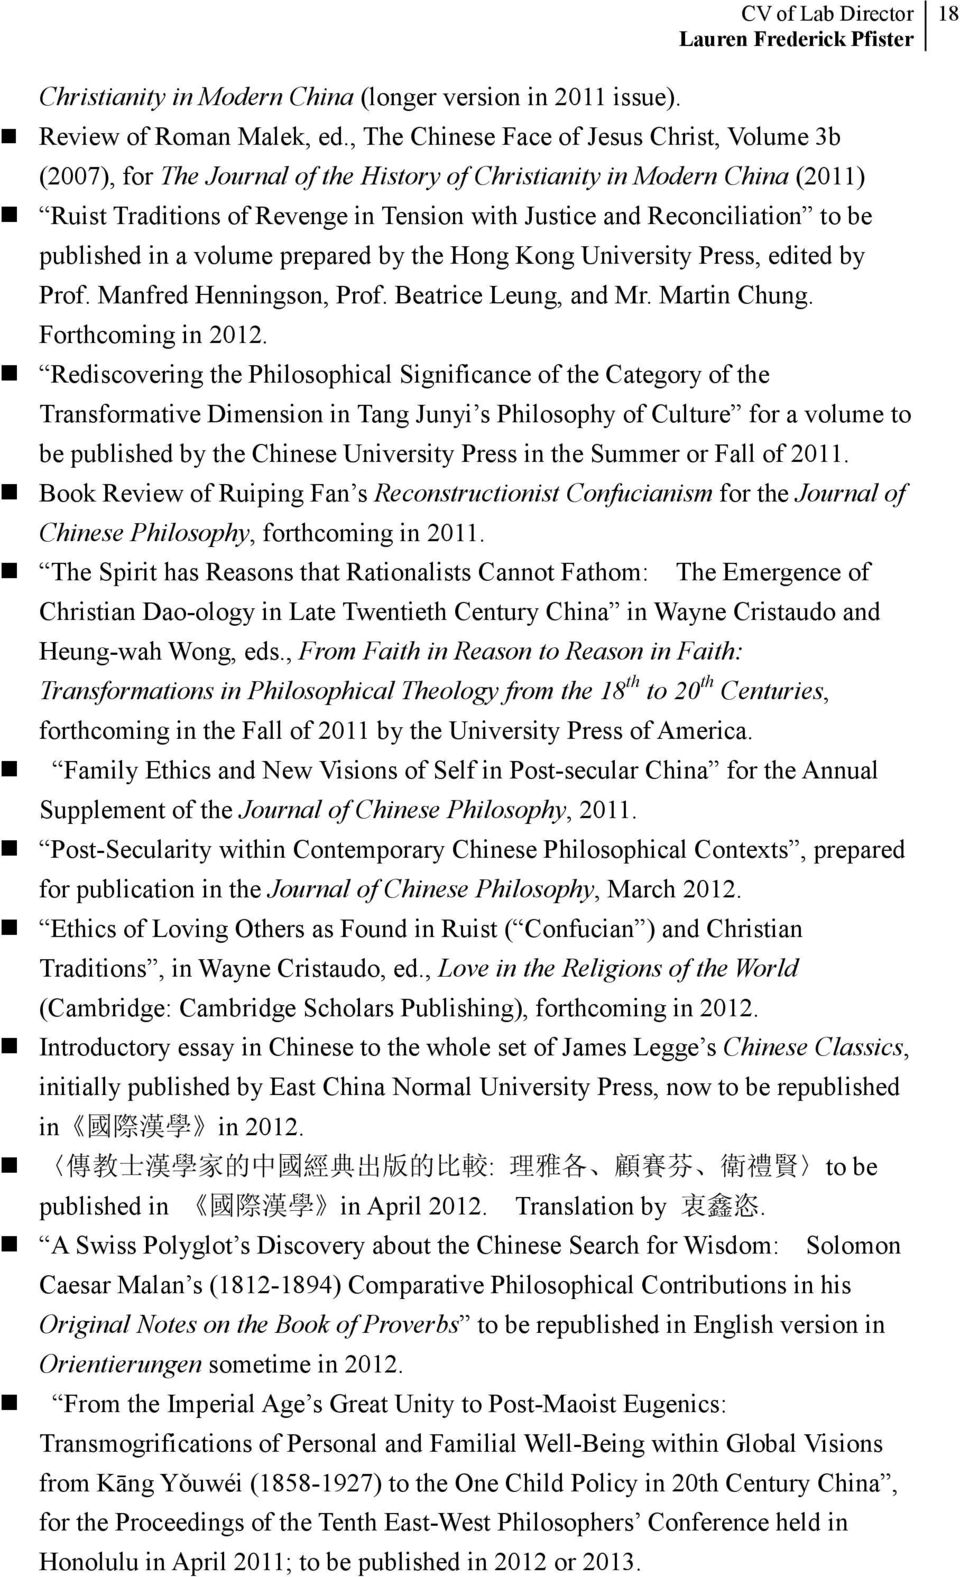 be published in a volume prepared by the Hong Kong University Press, edited by Prof. Manfred Henningson, Prof. Beatrice Leung, and Mr. Martin Chung. Forthcoming in 2012.